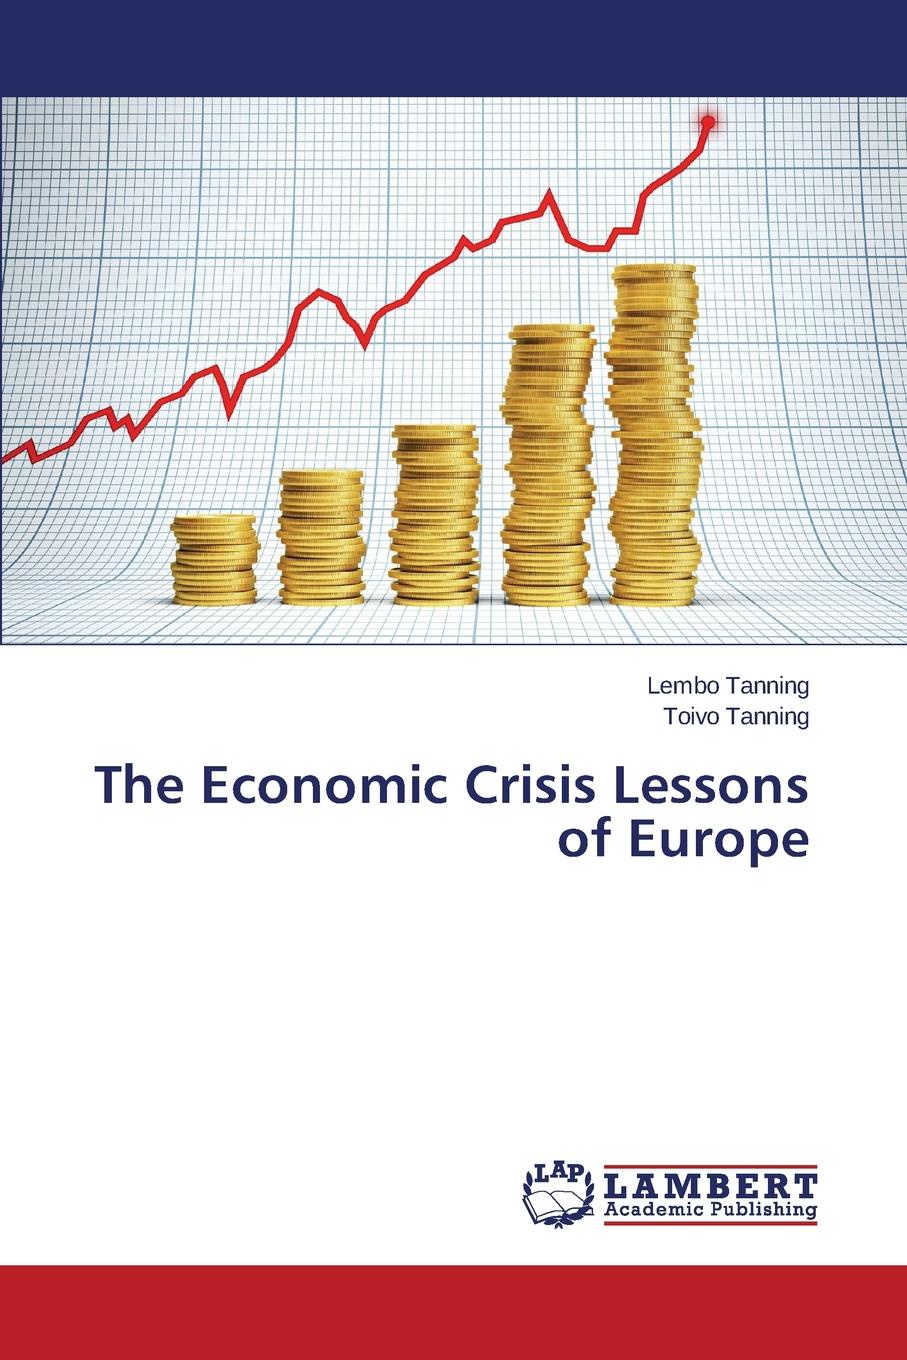 Tanning Lembo, Tanning Toivo The Economic Crisis Lessons of Europe bill george seven lessons for leading in crisis